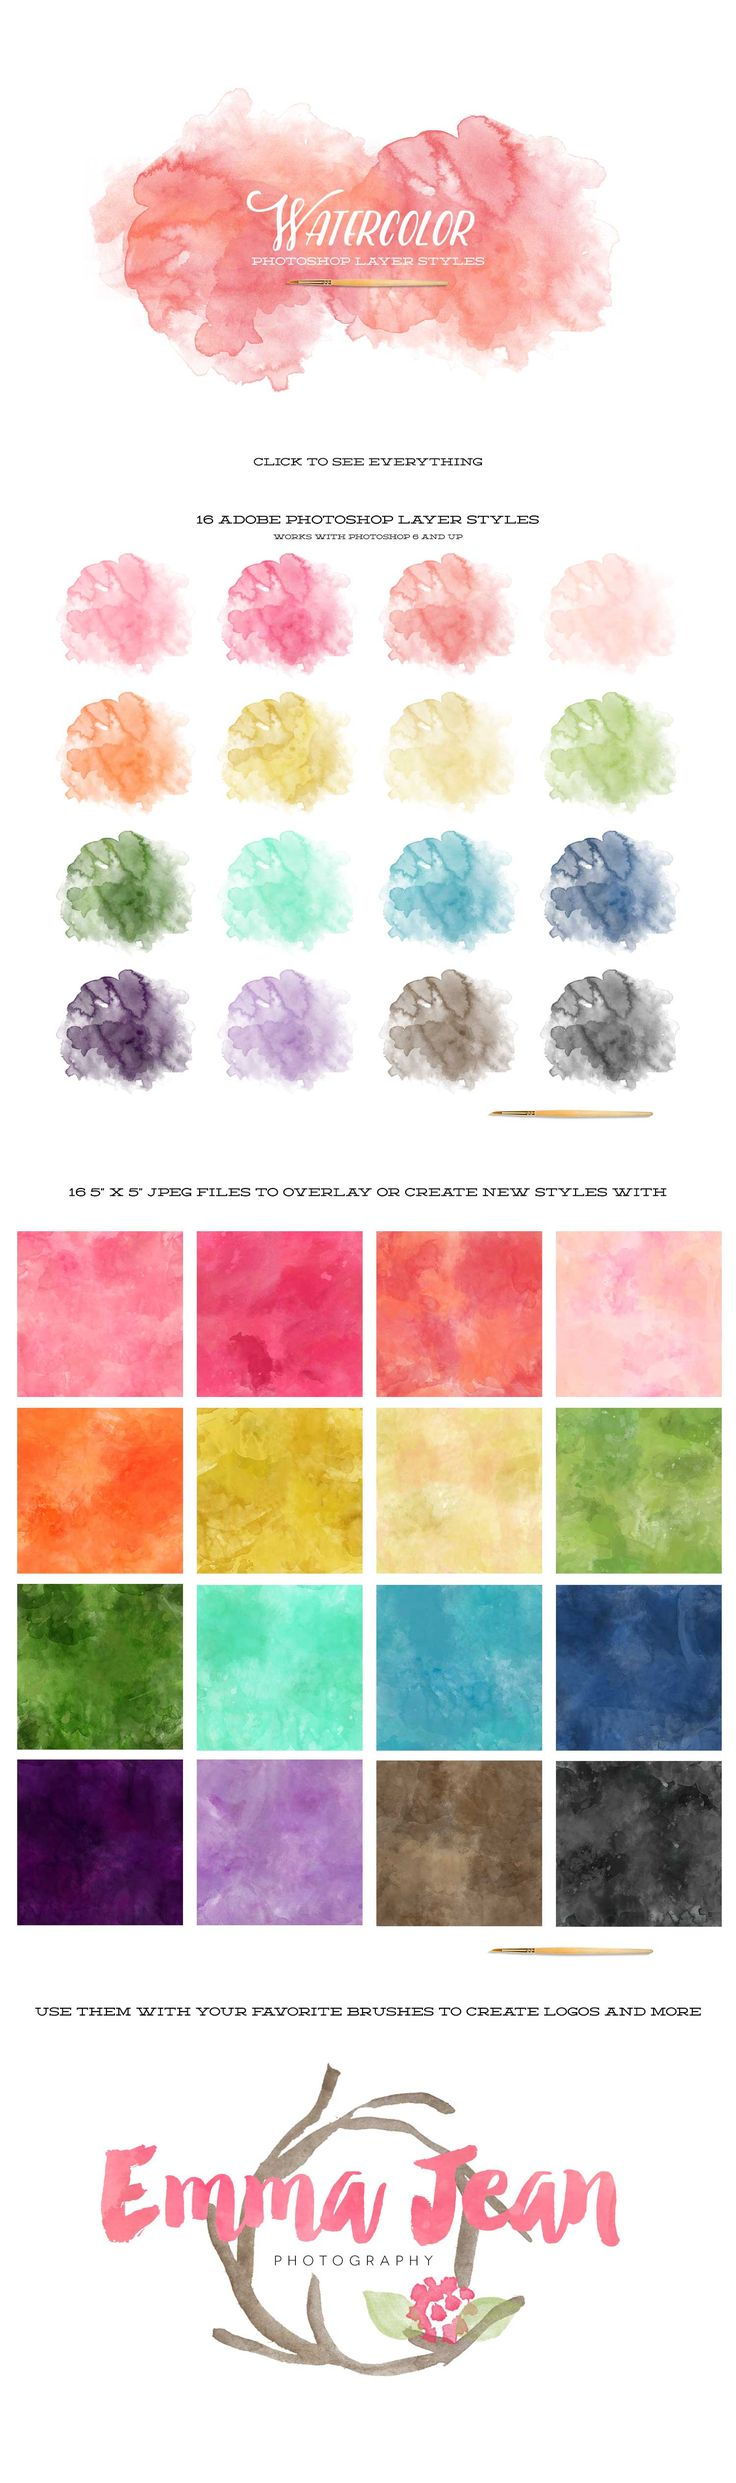 Watercolor Photoshop Layer Styles